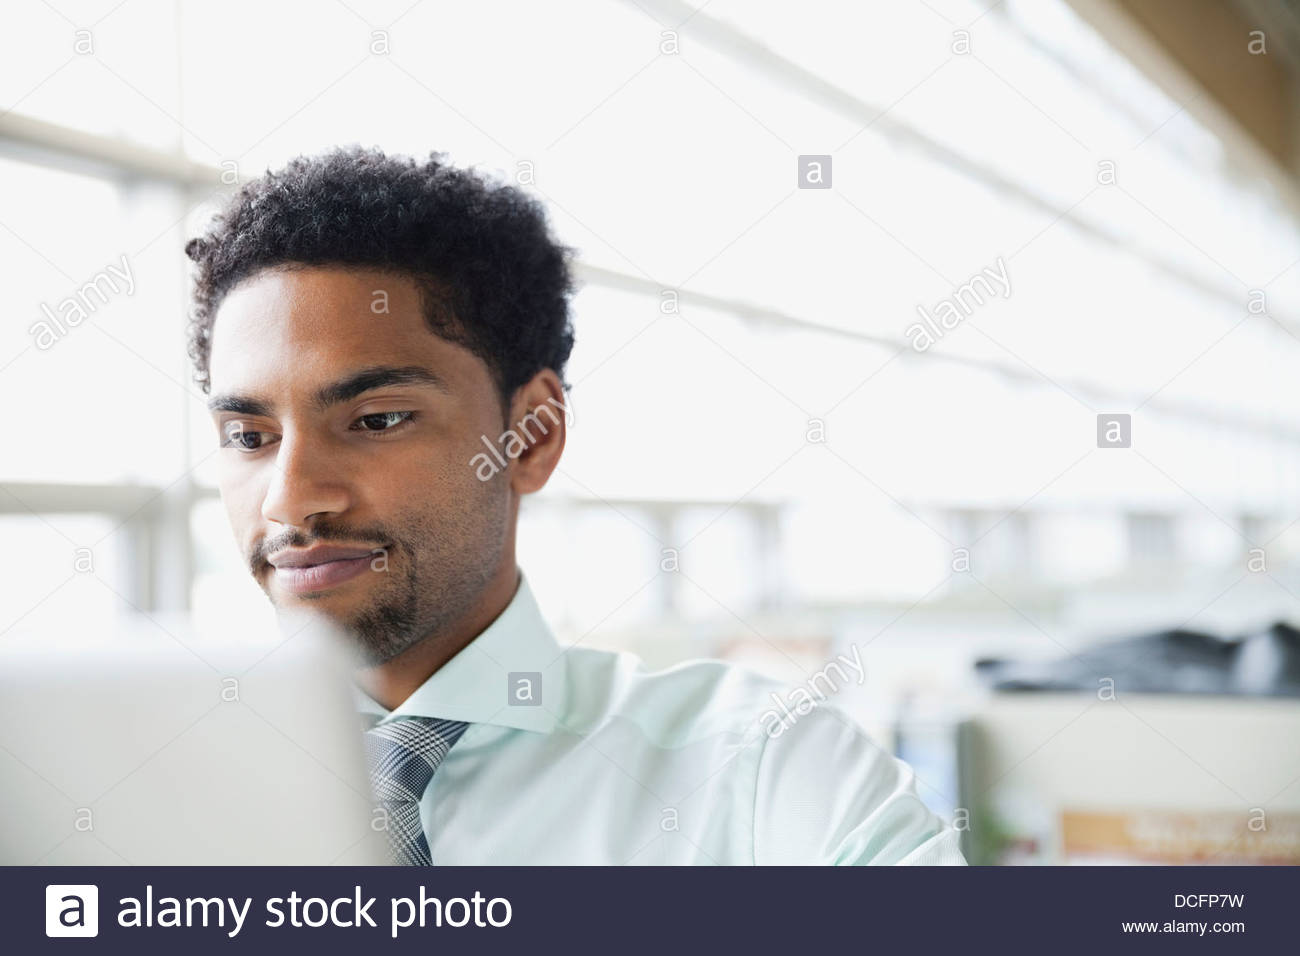 Businessman looking at computer screen - Stock Image